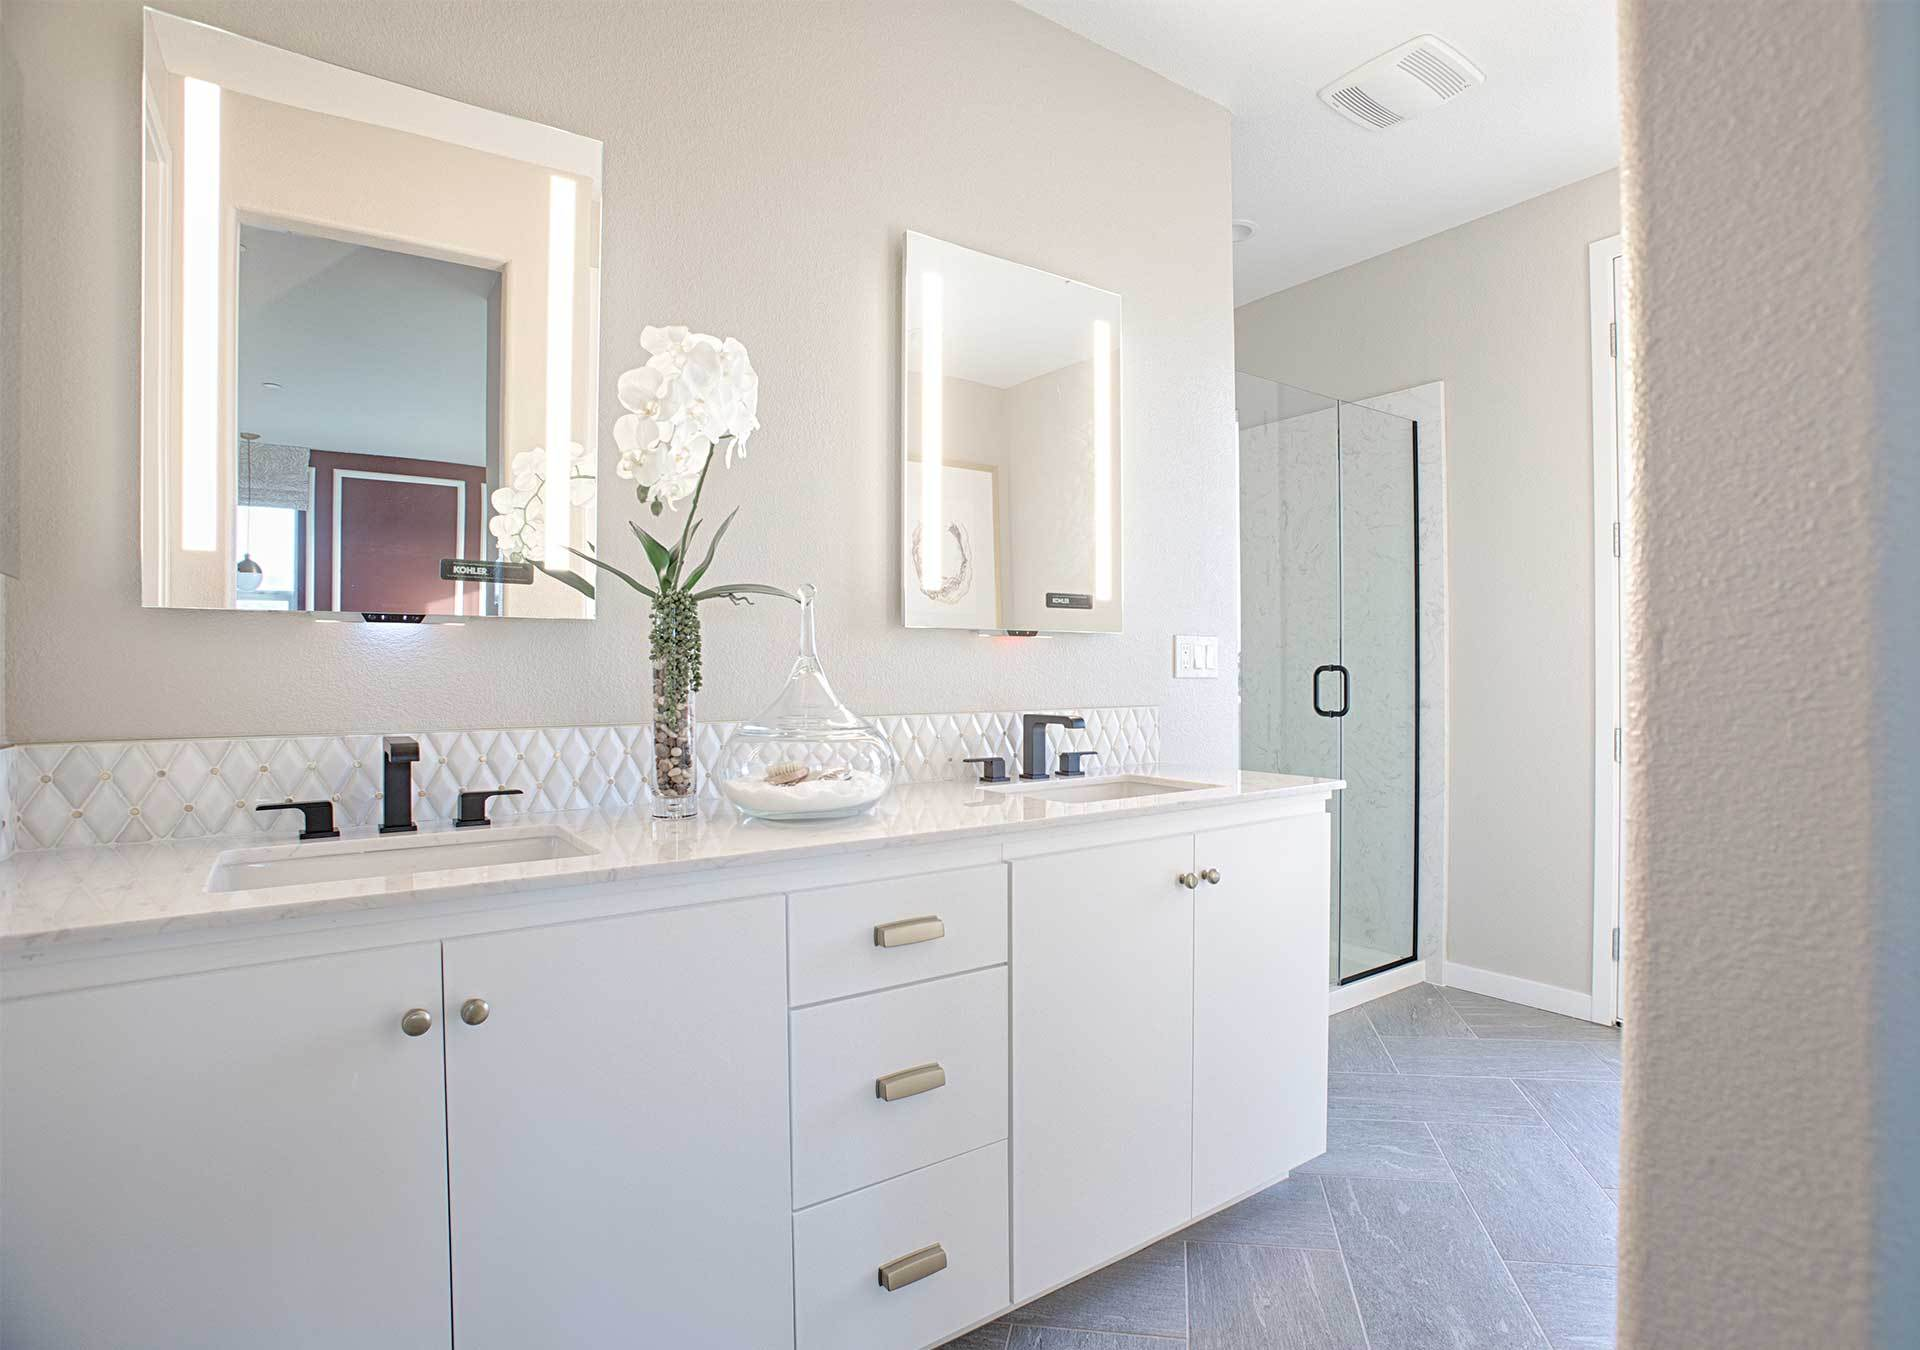 Bathroom featured in the Plan 3 By Tri Pointe Homes in Santa Rosa, CA